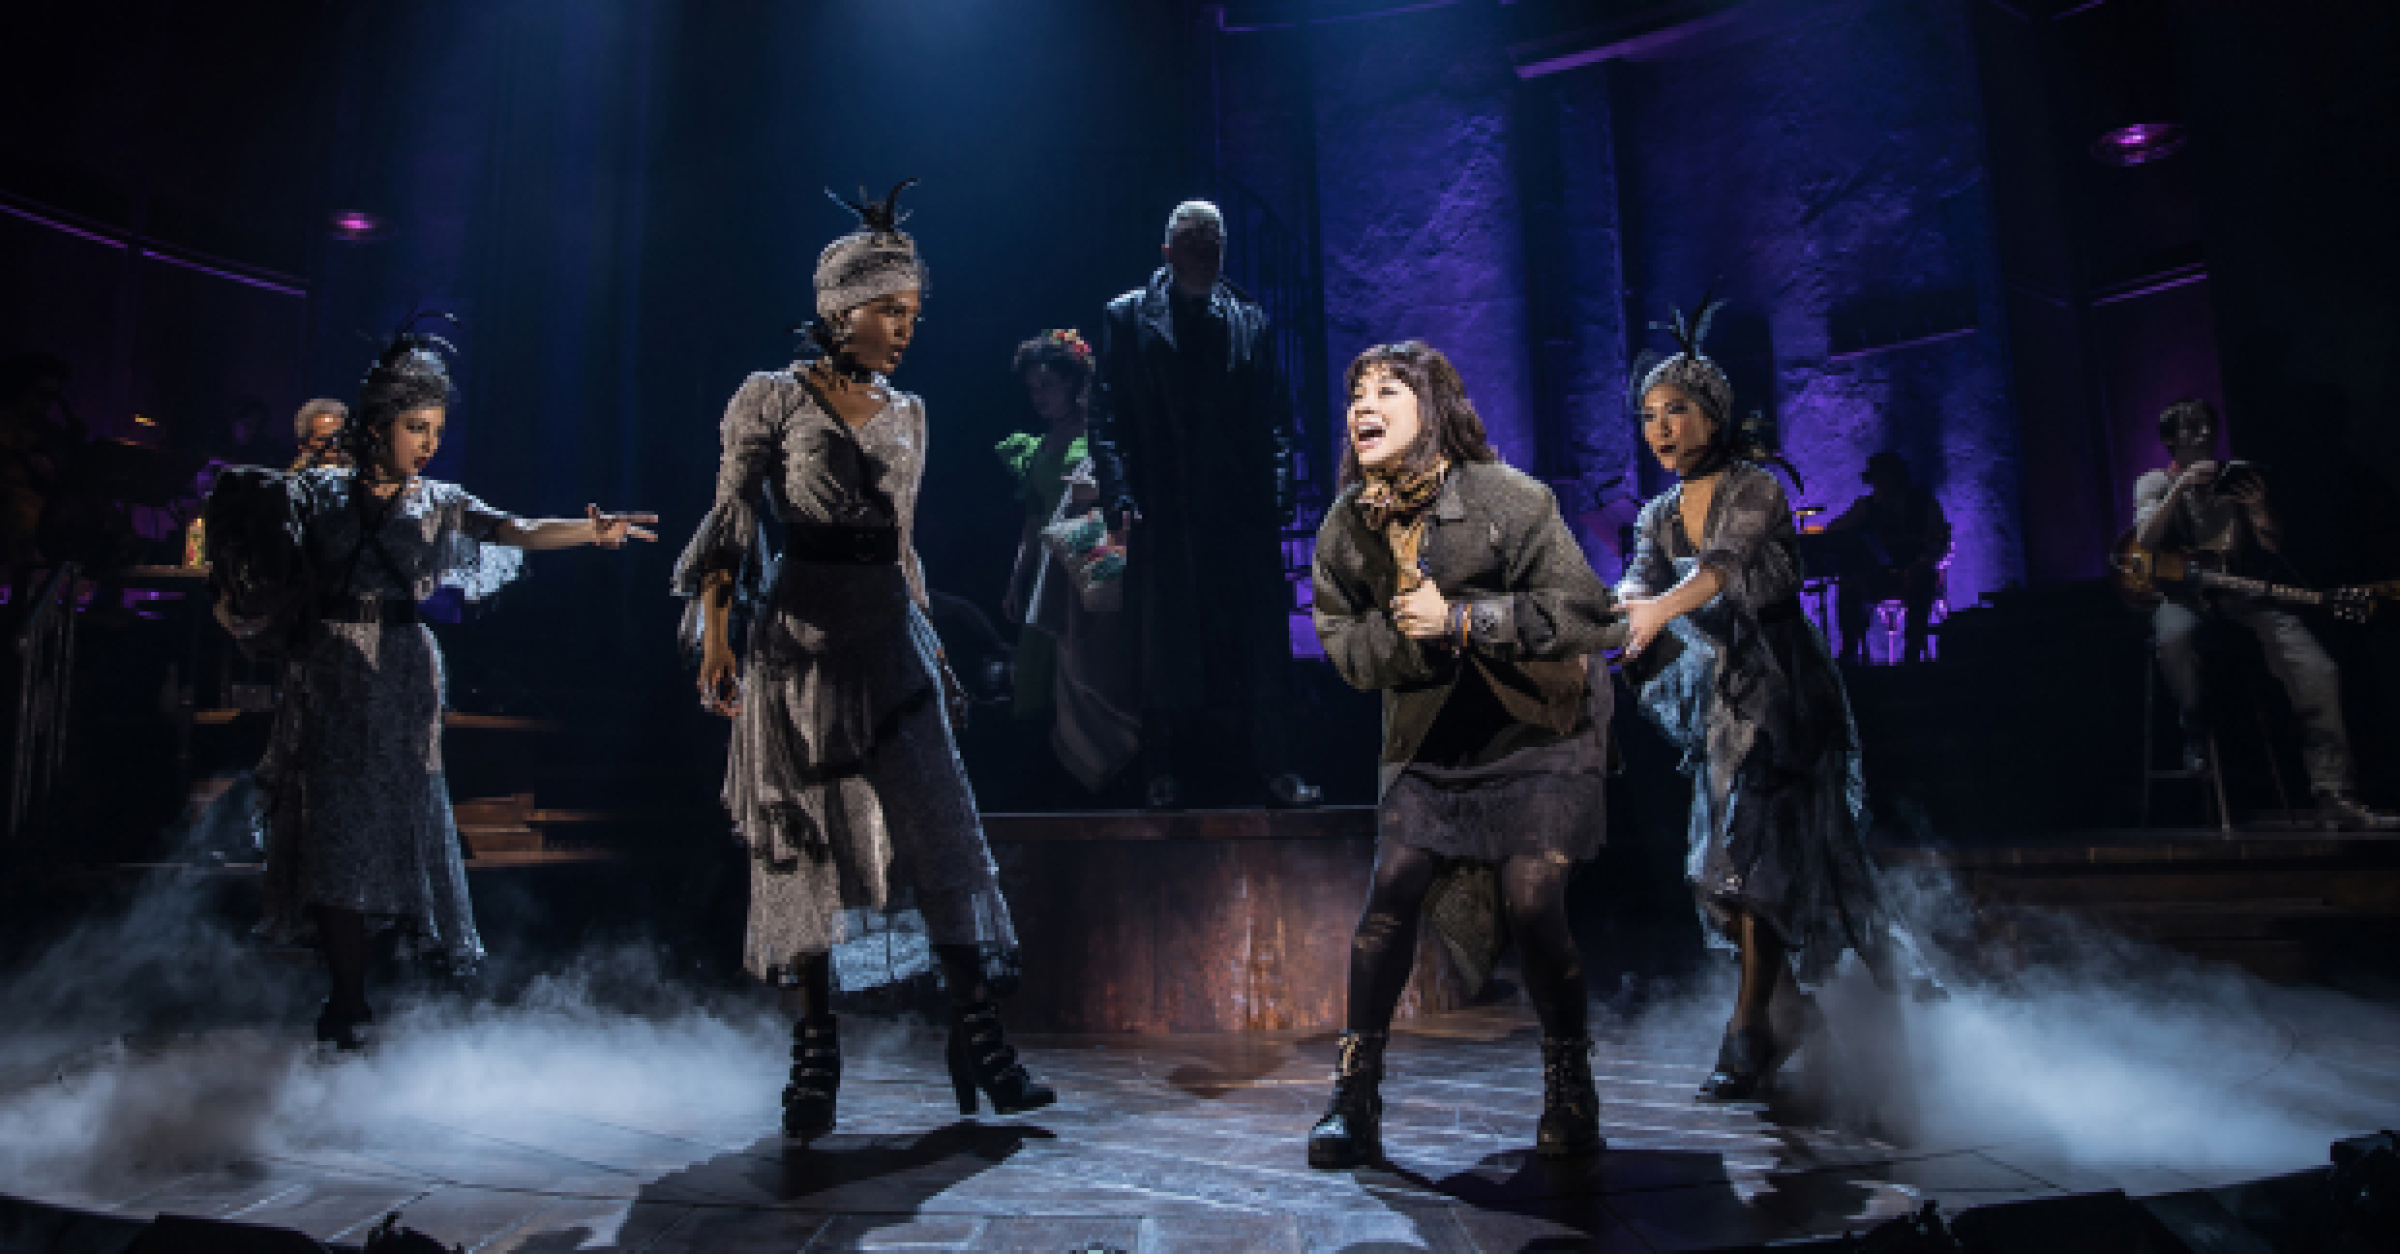 Hadestown Broadway Cast Album Tracks to Be Released in Batches